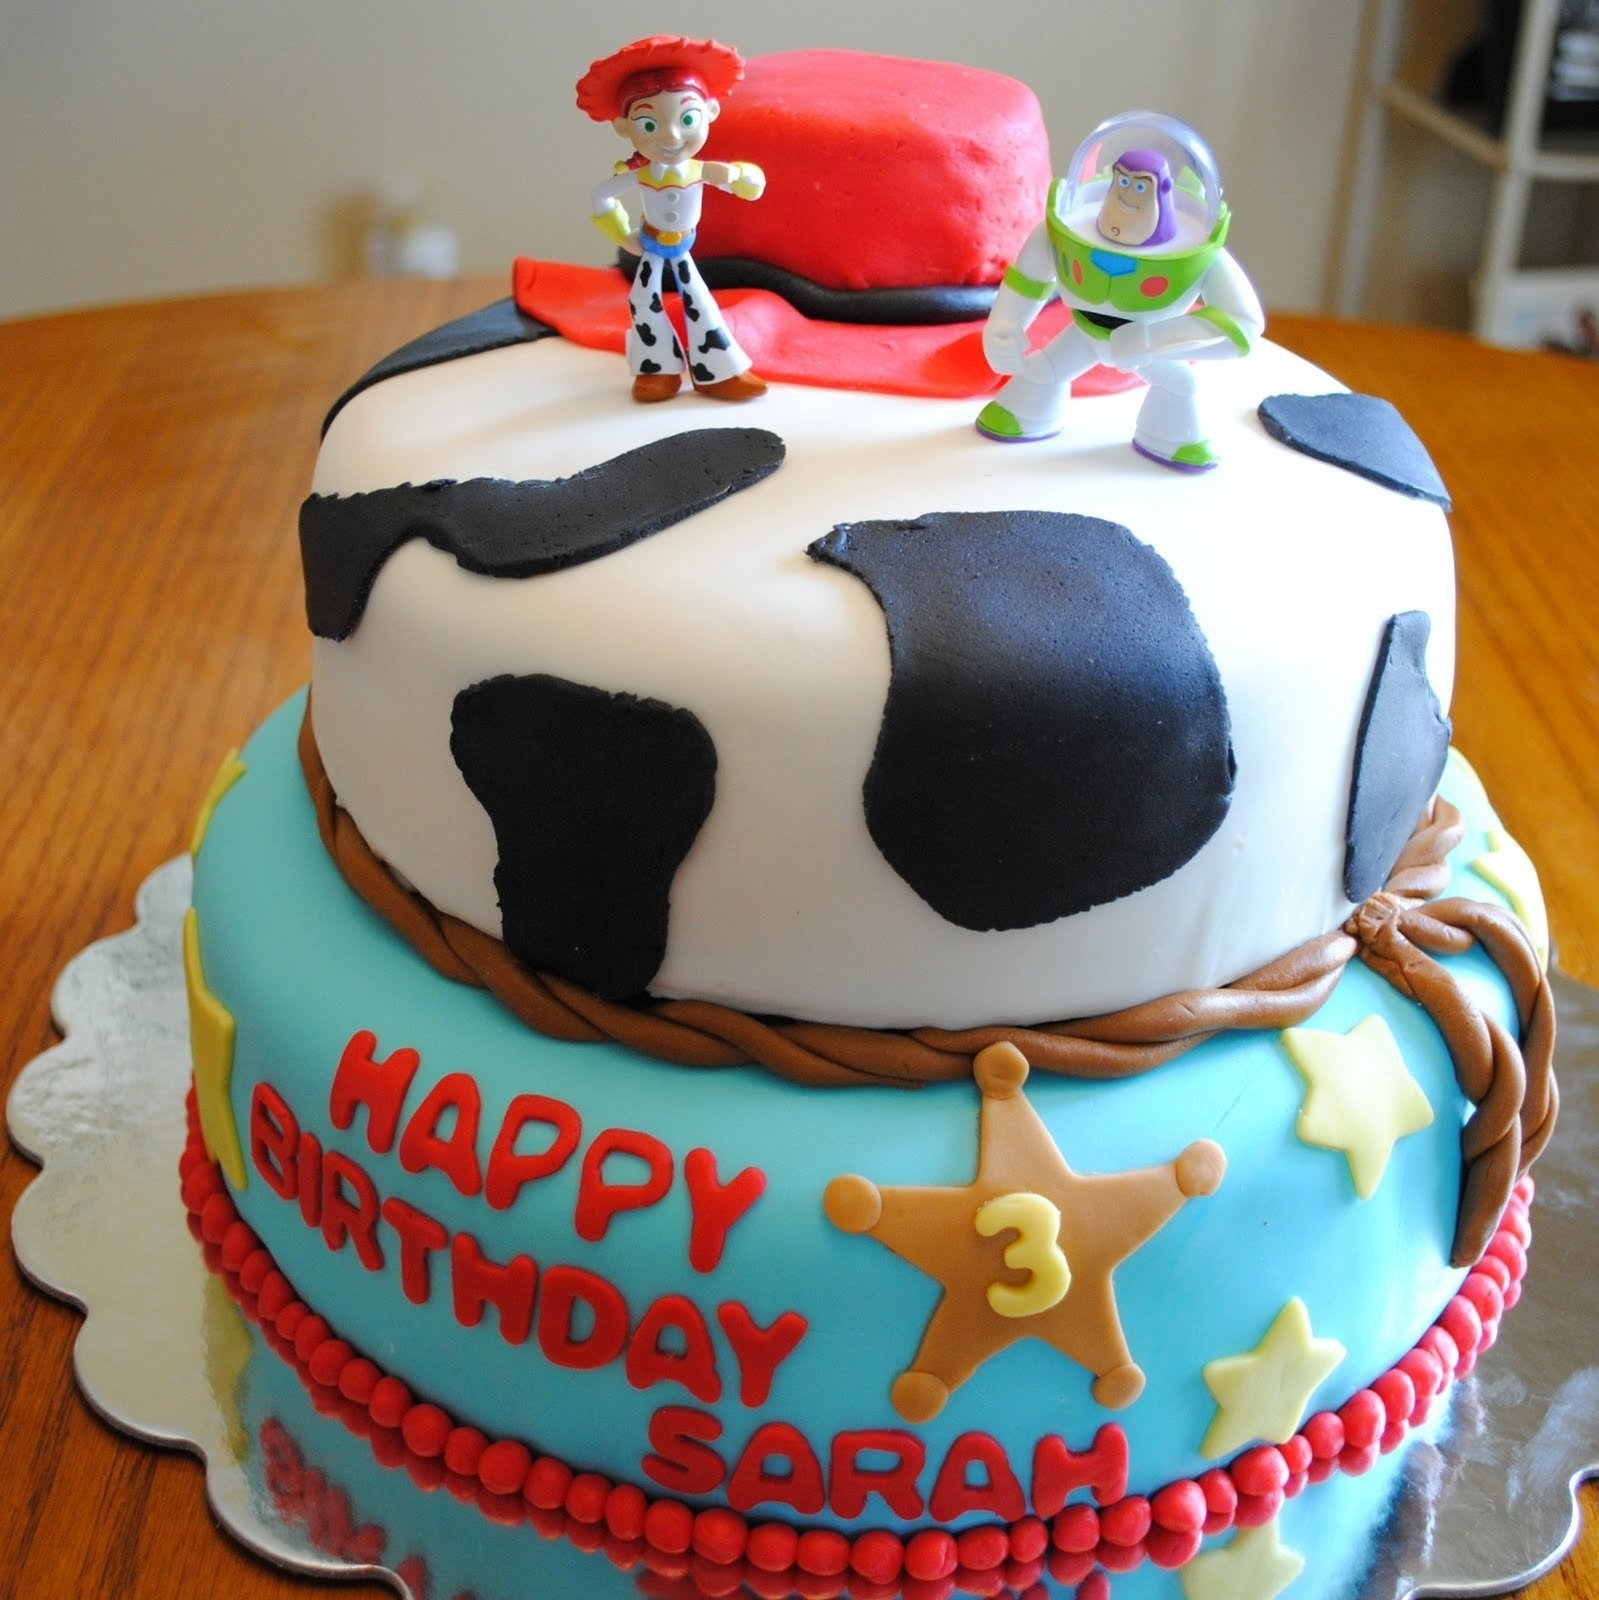 10 Spectacular Toy Story Birthday Cake Ideas toy story cakes decoration ideas little birthday cakes 1